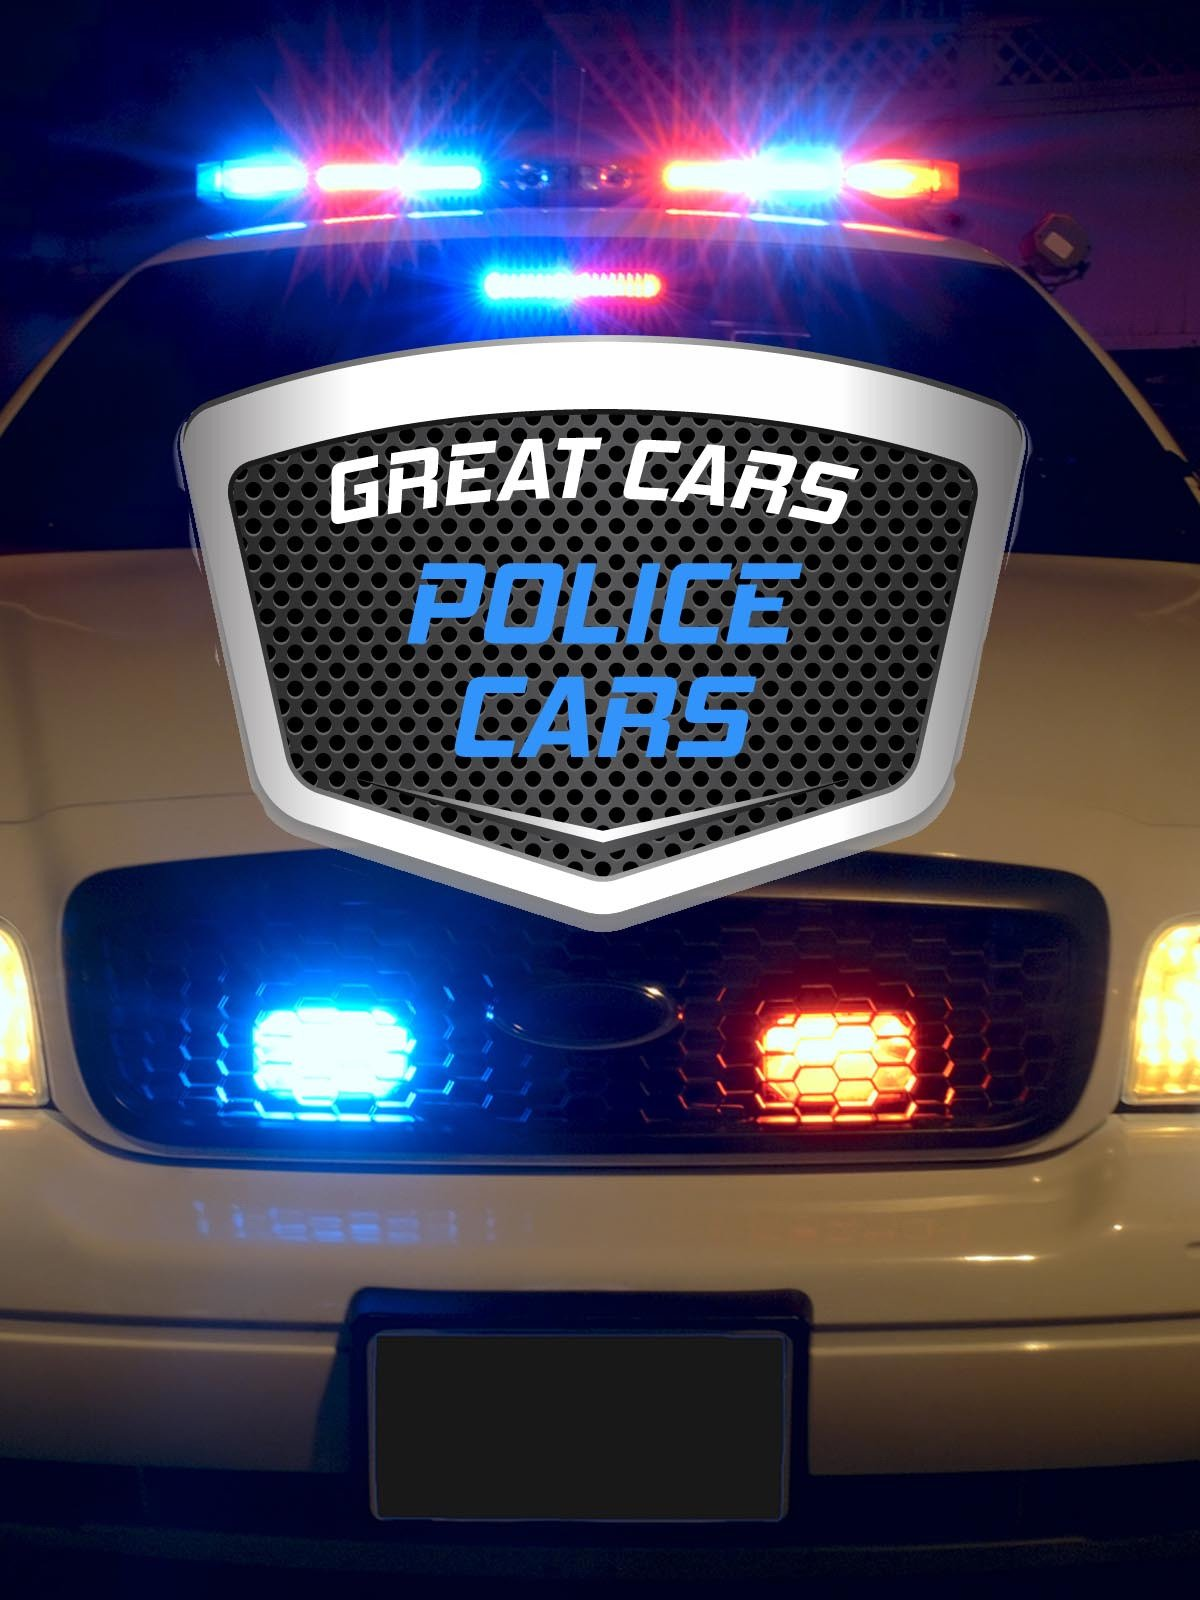 Great Cars: Police Cars on Amazon Prime Video UK